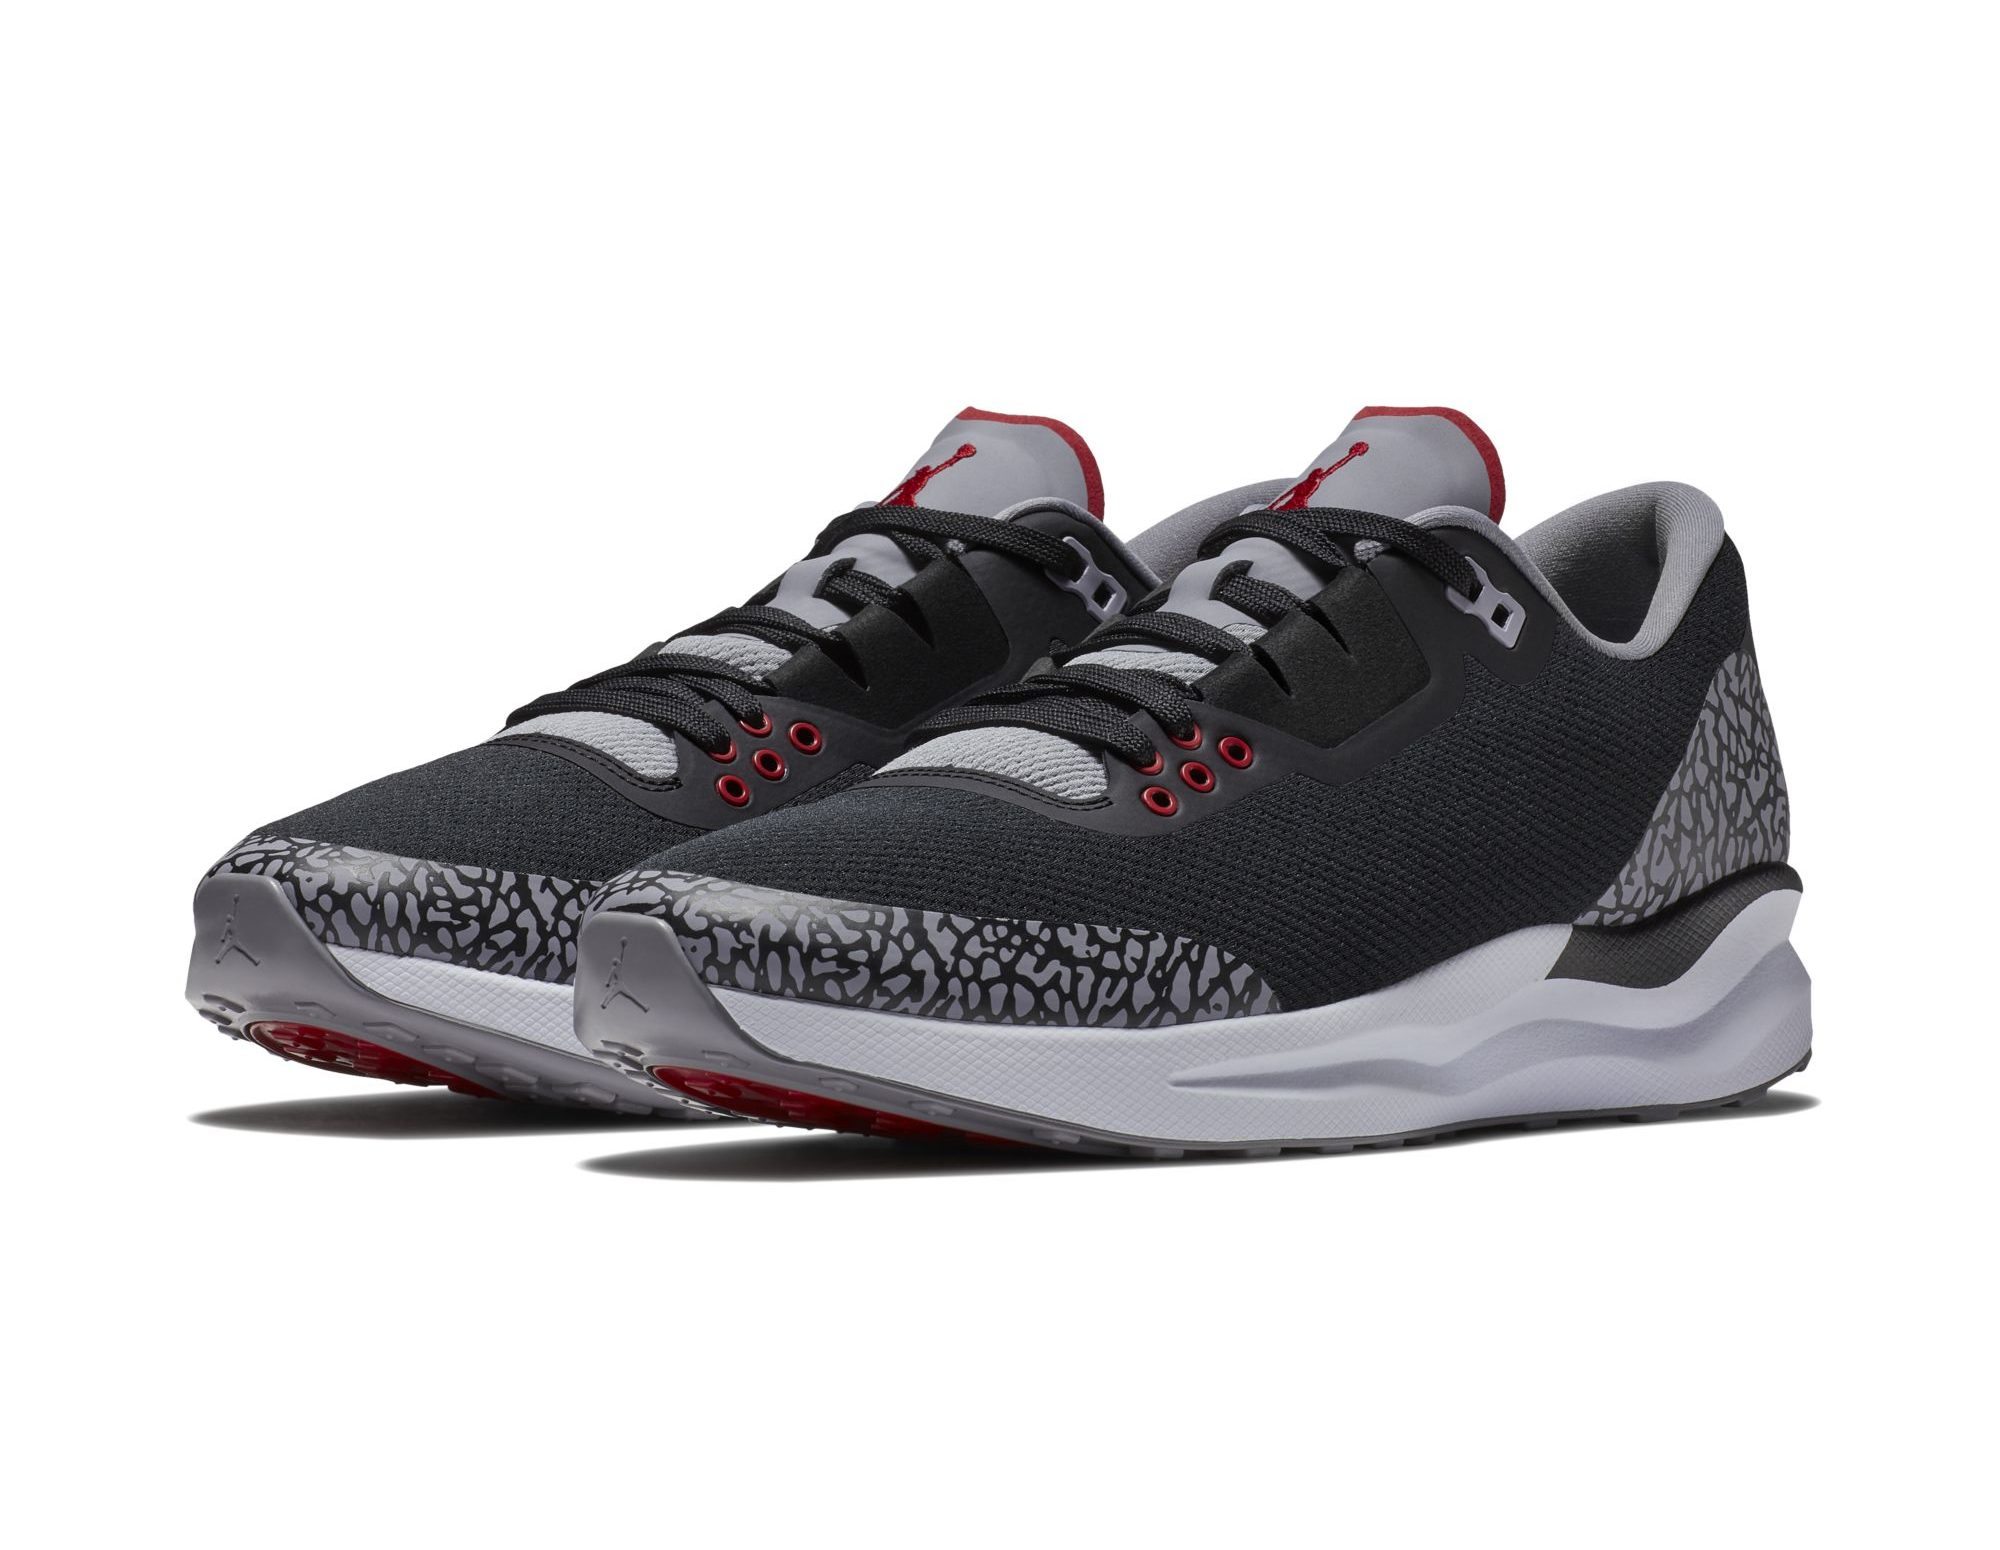 more photos 1e5a0 e5fd2 The Jordan Zoom Tenacity 88 Dons OG Air Jordan 3 Colorways ...